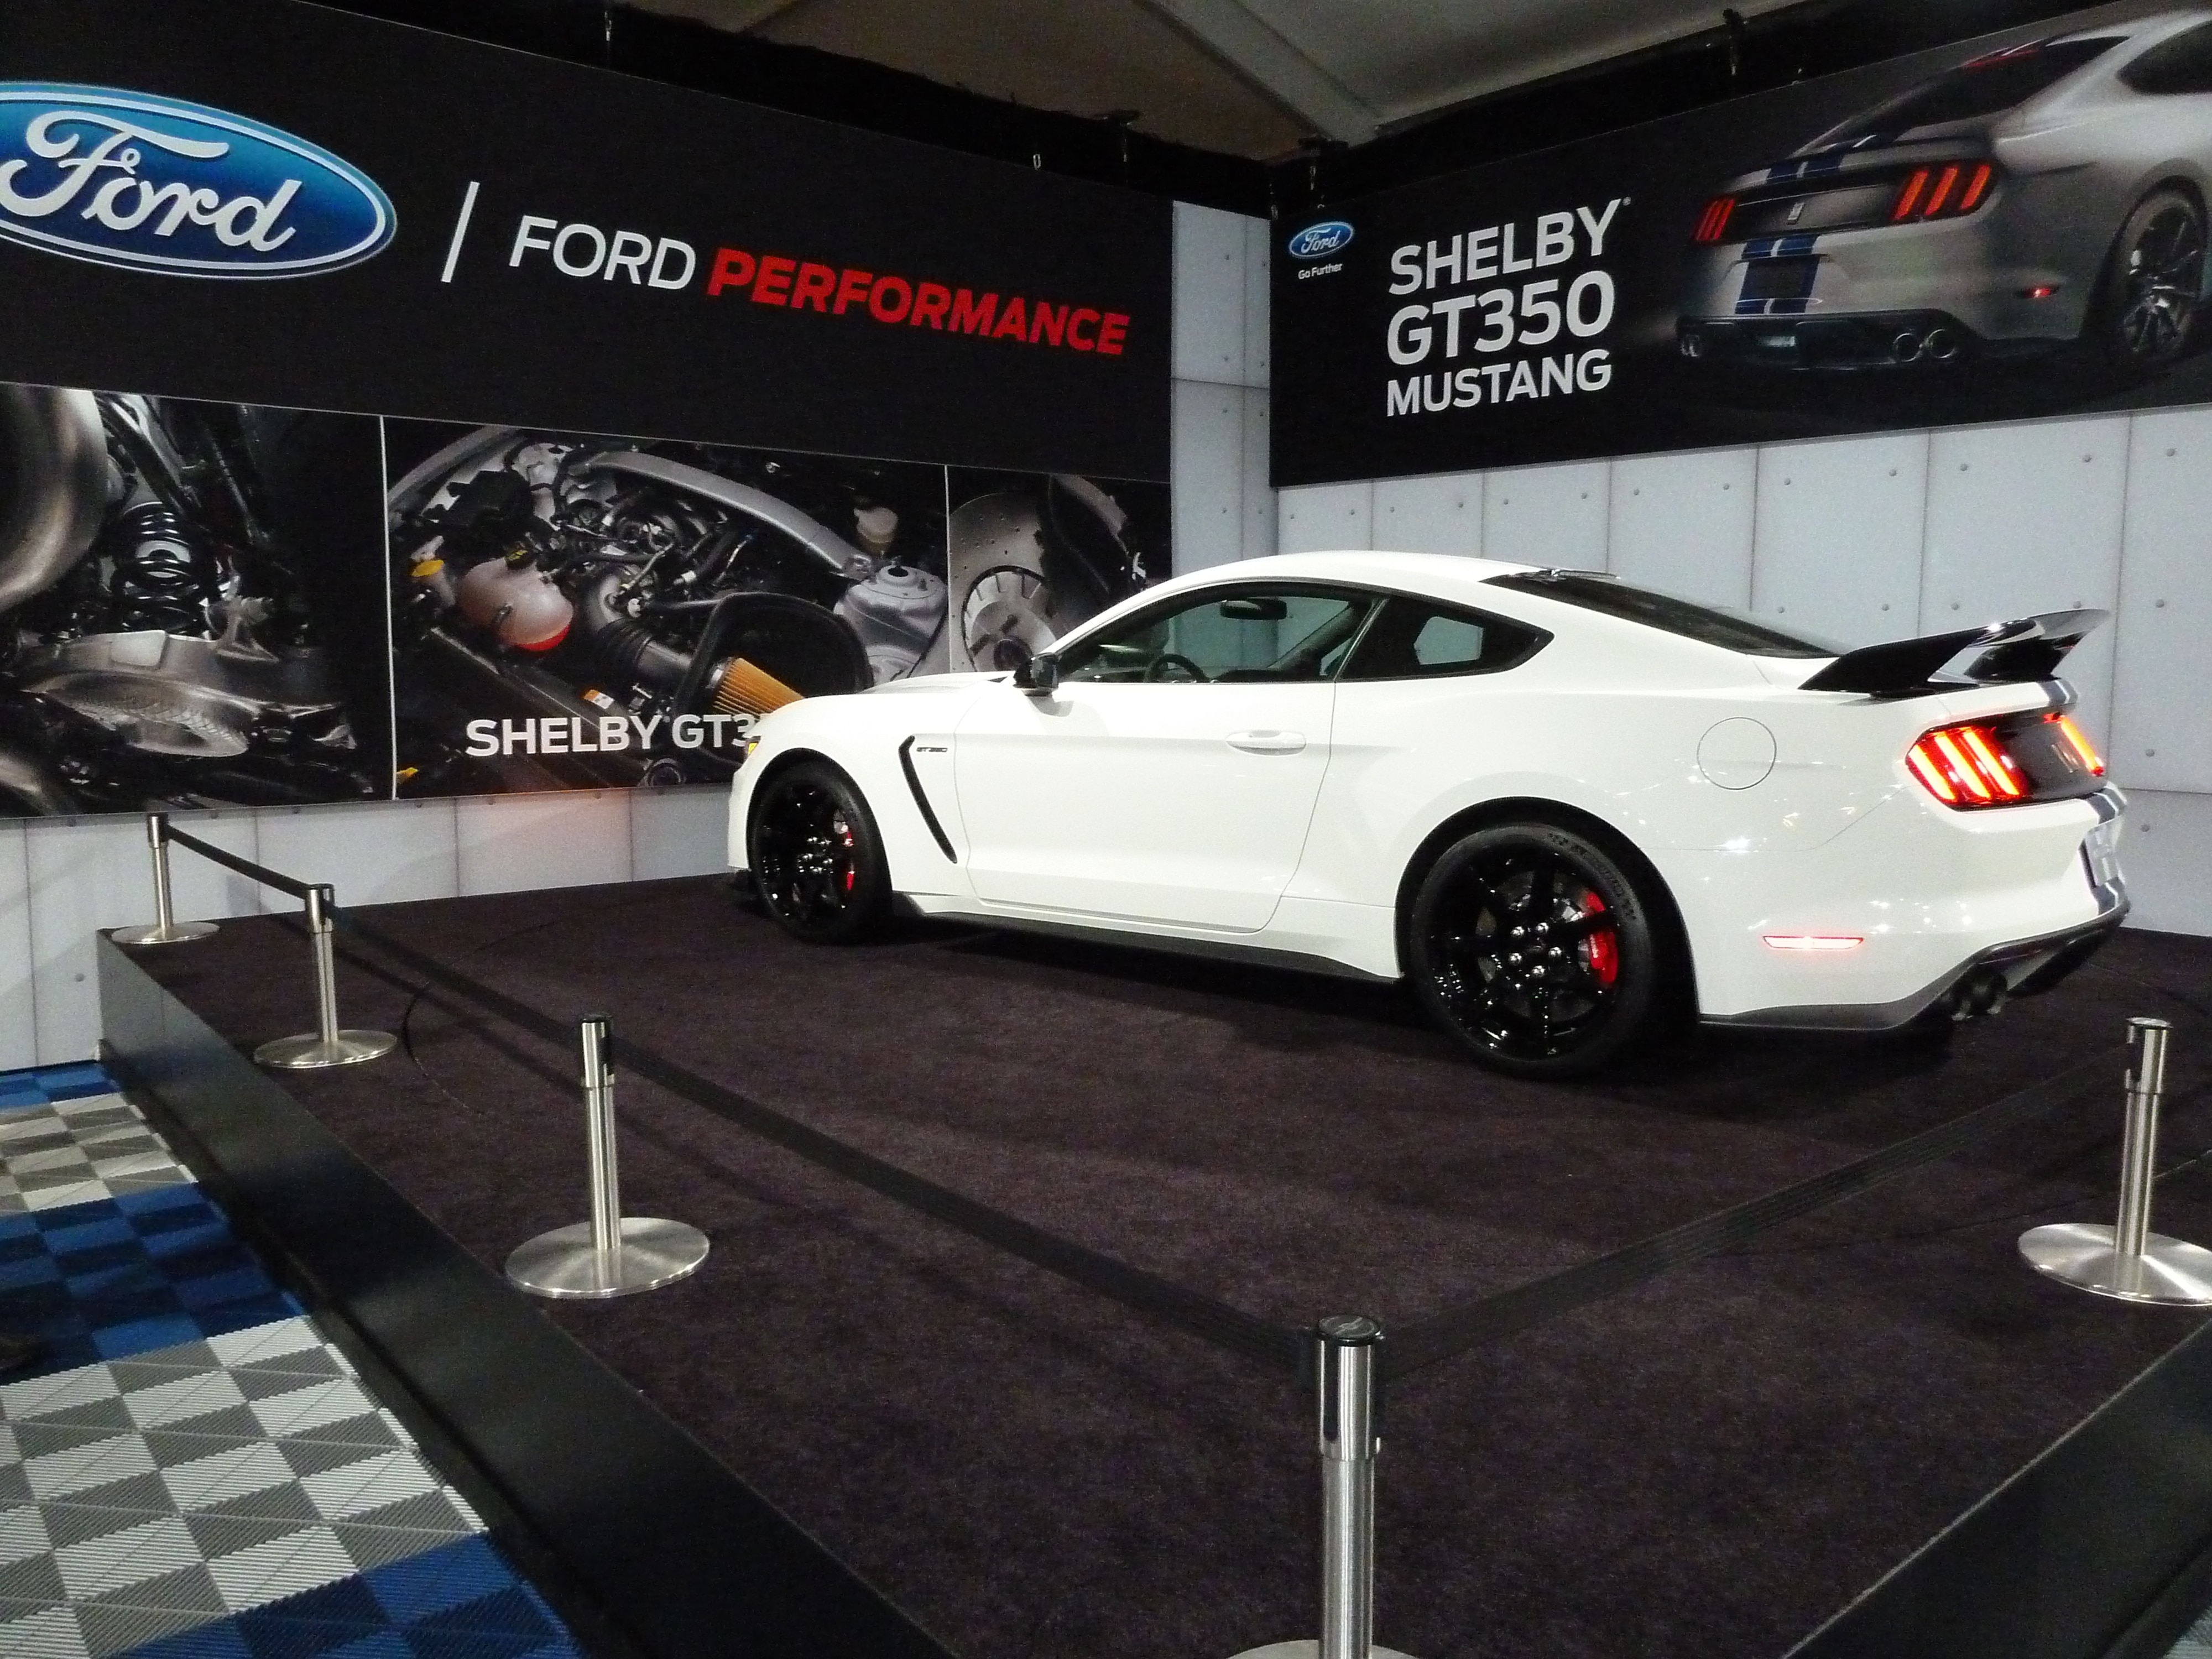 GT350 On Display In Ford Booth